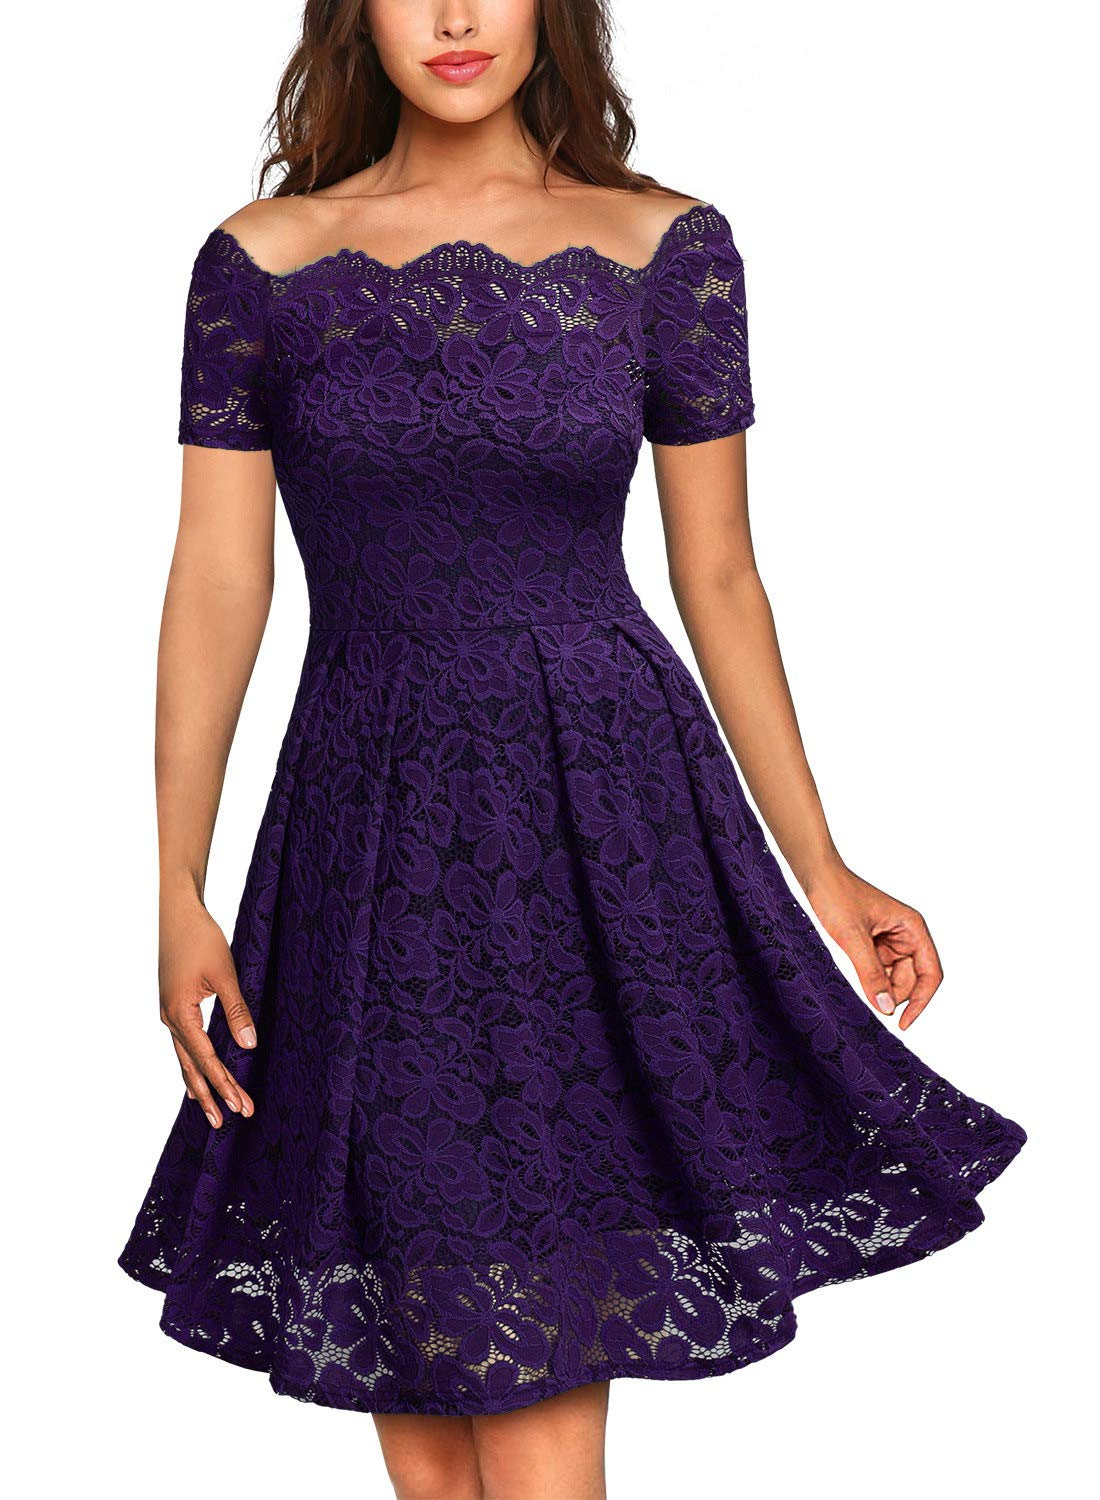 543c9528e7fd MISSMAY Women s Vintage Floral Lace Boat Neck Cocktail Formal Swing Dress.  By MissMay